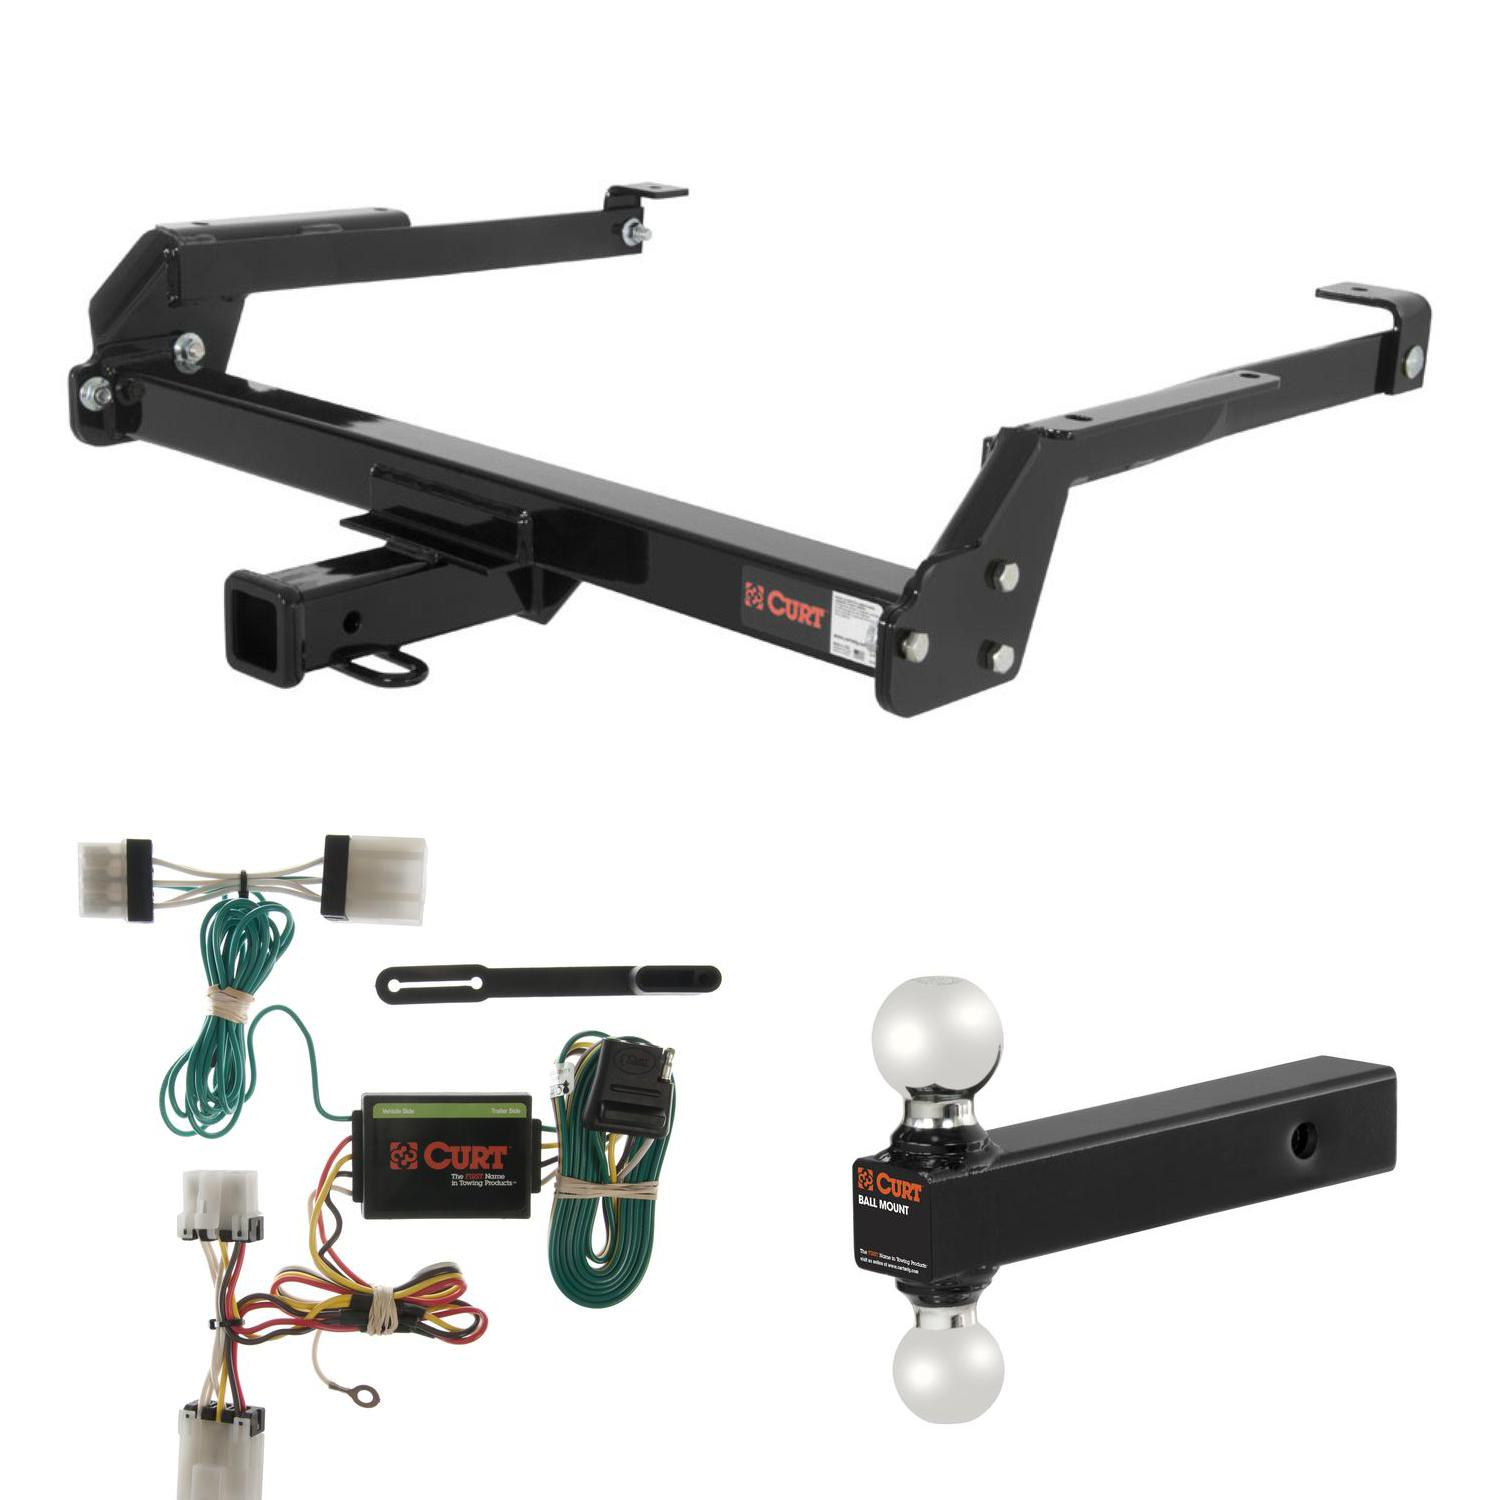 CURT Trailer Hitch, Wiring & Multi-Ball Ball Mount for Nissan D21, Pickup